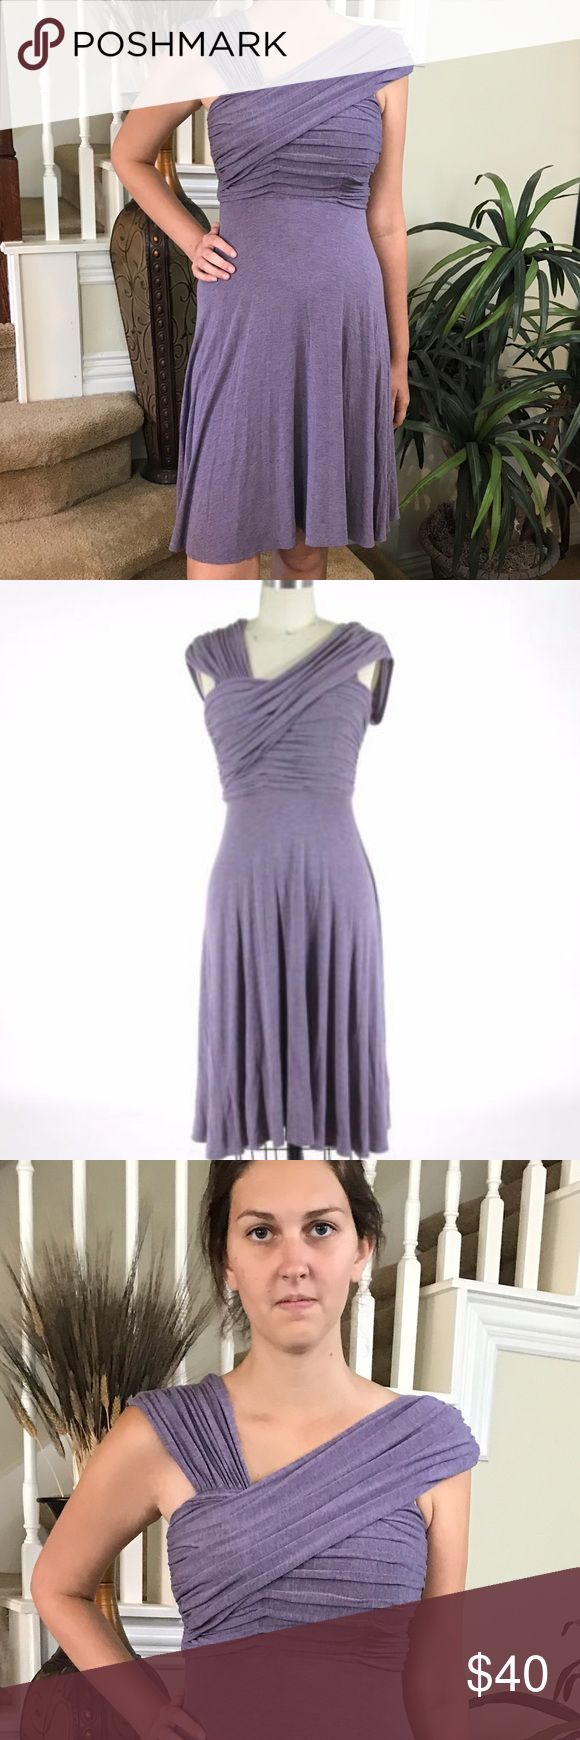 Anthropologie Plenty by Tracy Reese Dress This Anthro Plenty by Tracy Reese is stunning with its draping abstract neckline, comfort knit and in a beautiful soft purple. Plenty by Tracy Reese Dresses